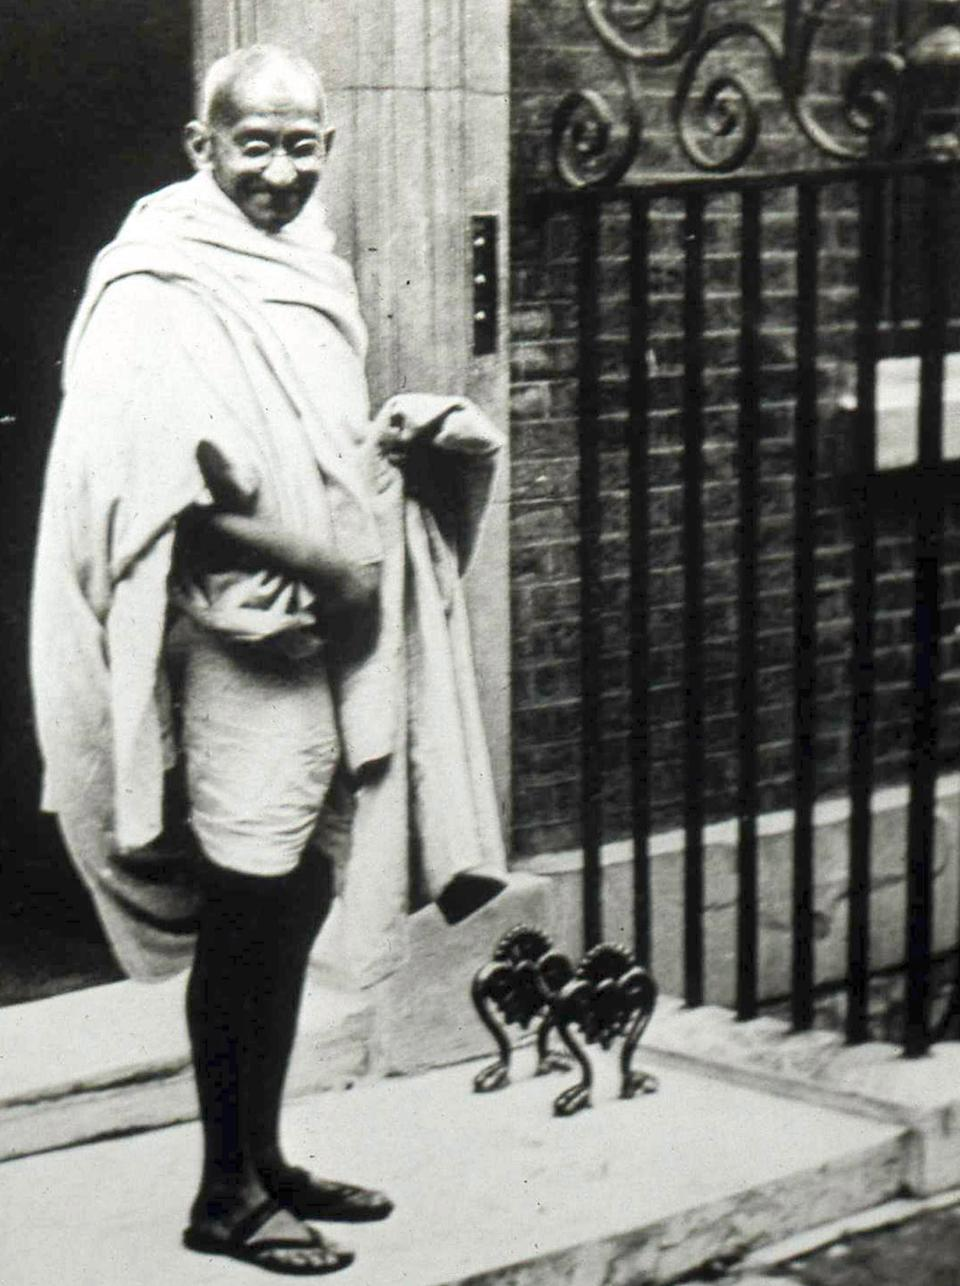 Mahatma K Gandhi (1869-1948) visited Britain in 1931 to attend the second Round Table conference. He visited the British Prime Minister, Ramsay MacDonald, at 10 Downing Street. (Photo by Universal History Archive/Getty Images)